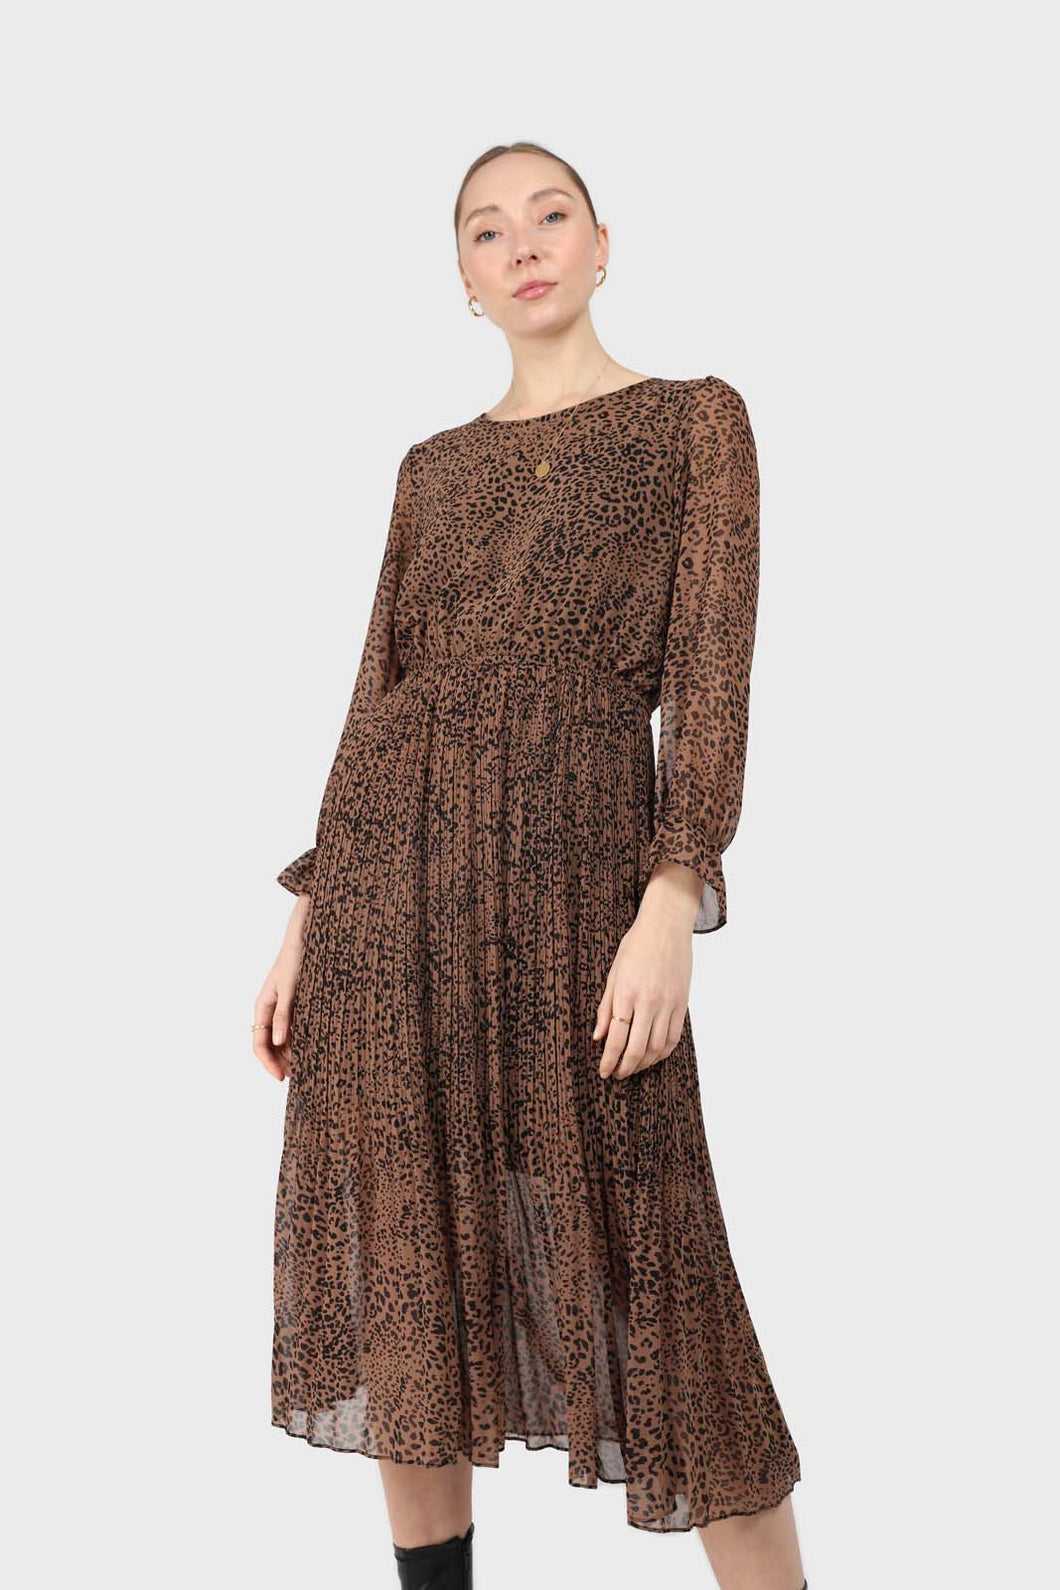 Camel animal print silky micro pleat long sleeved maxi dress1sx